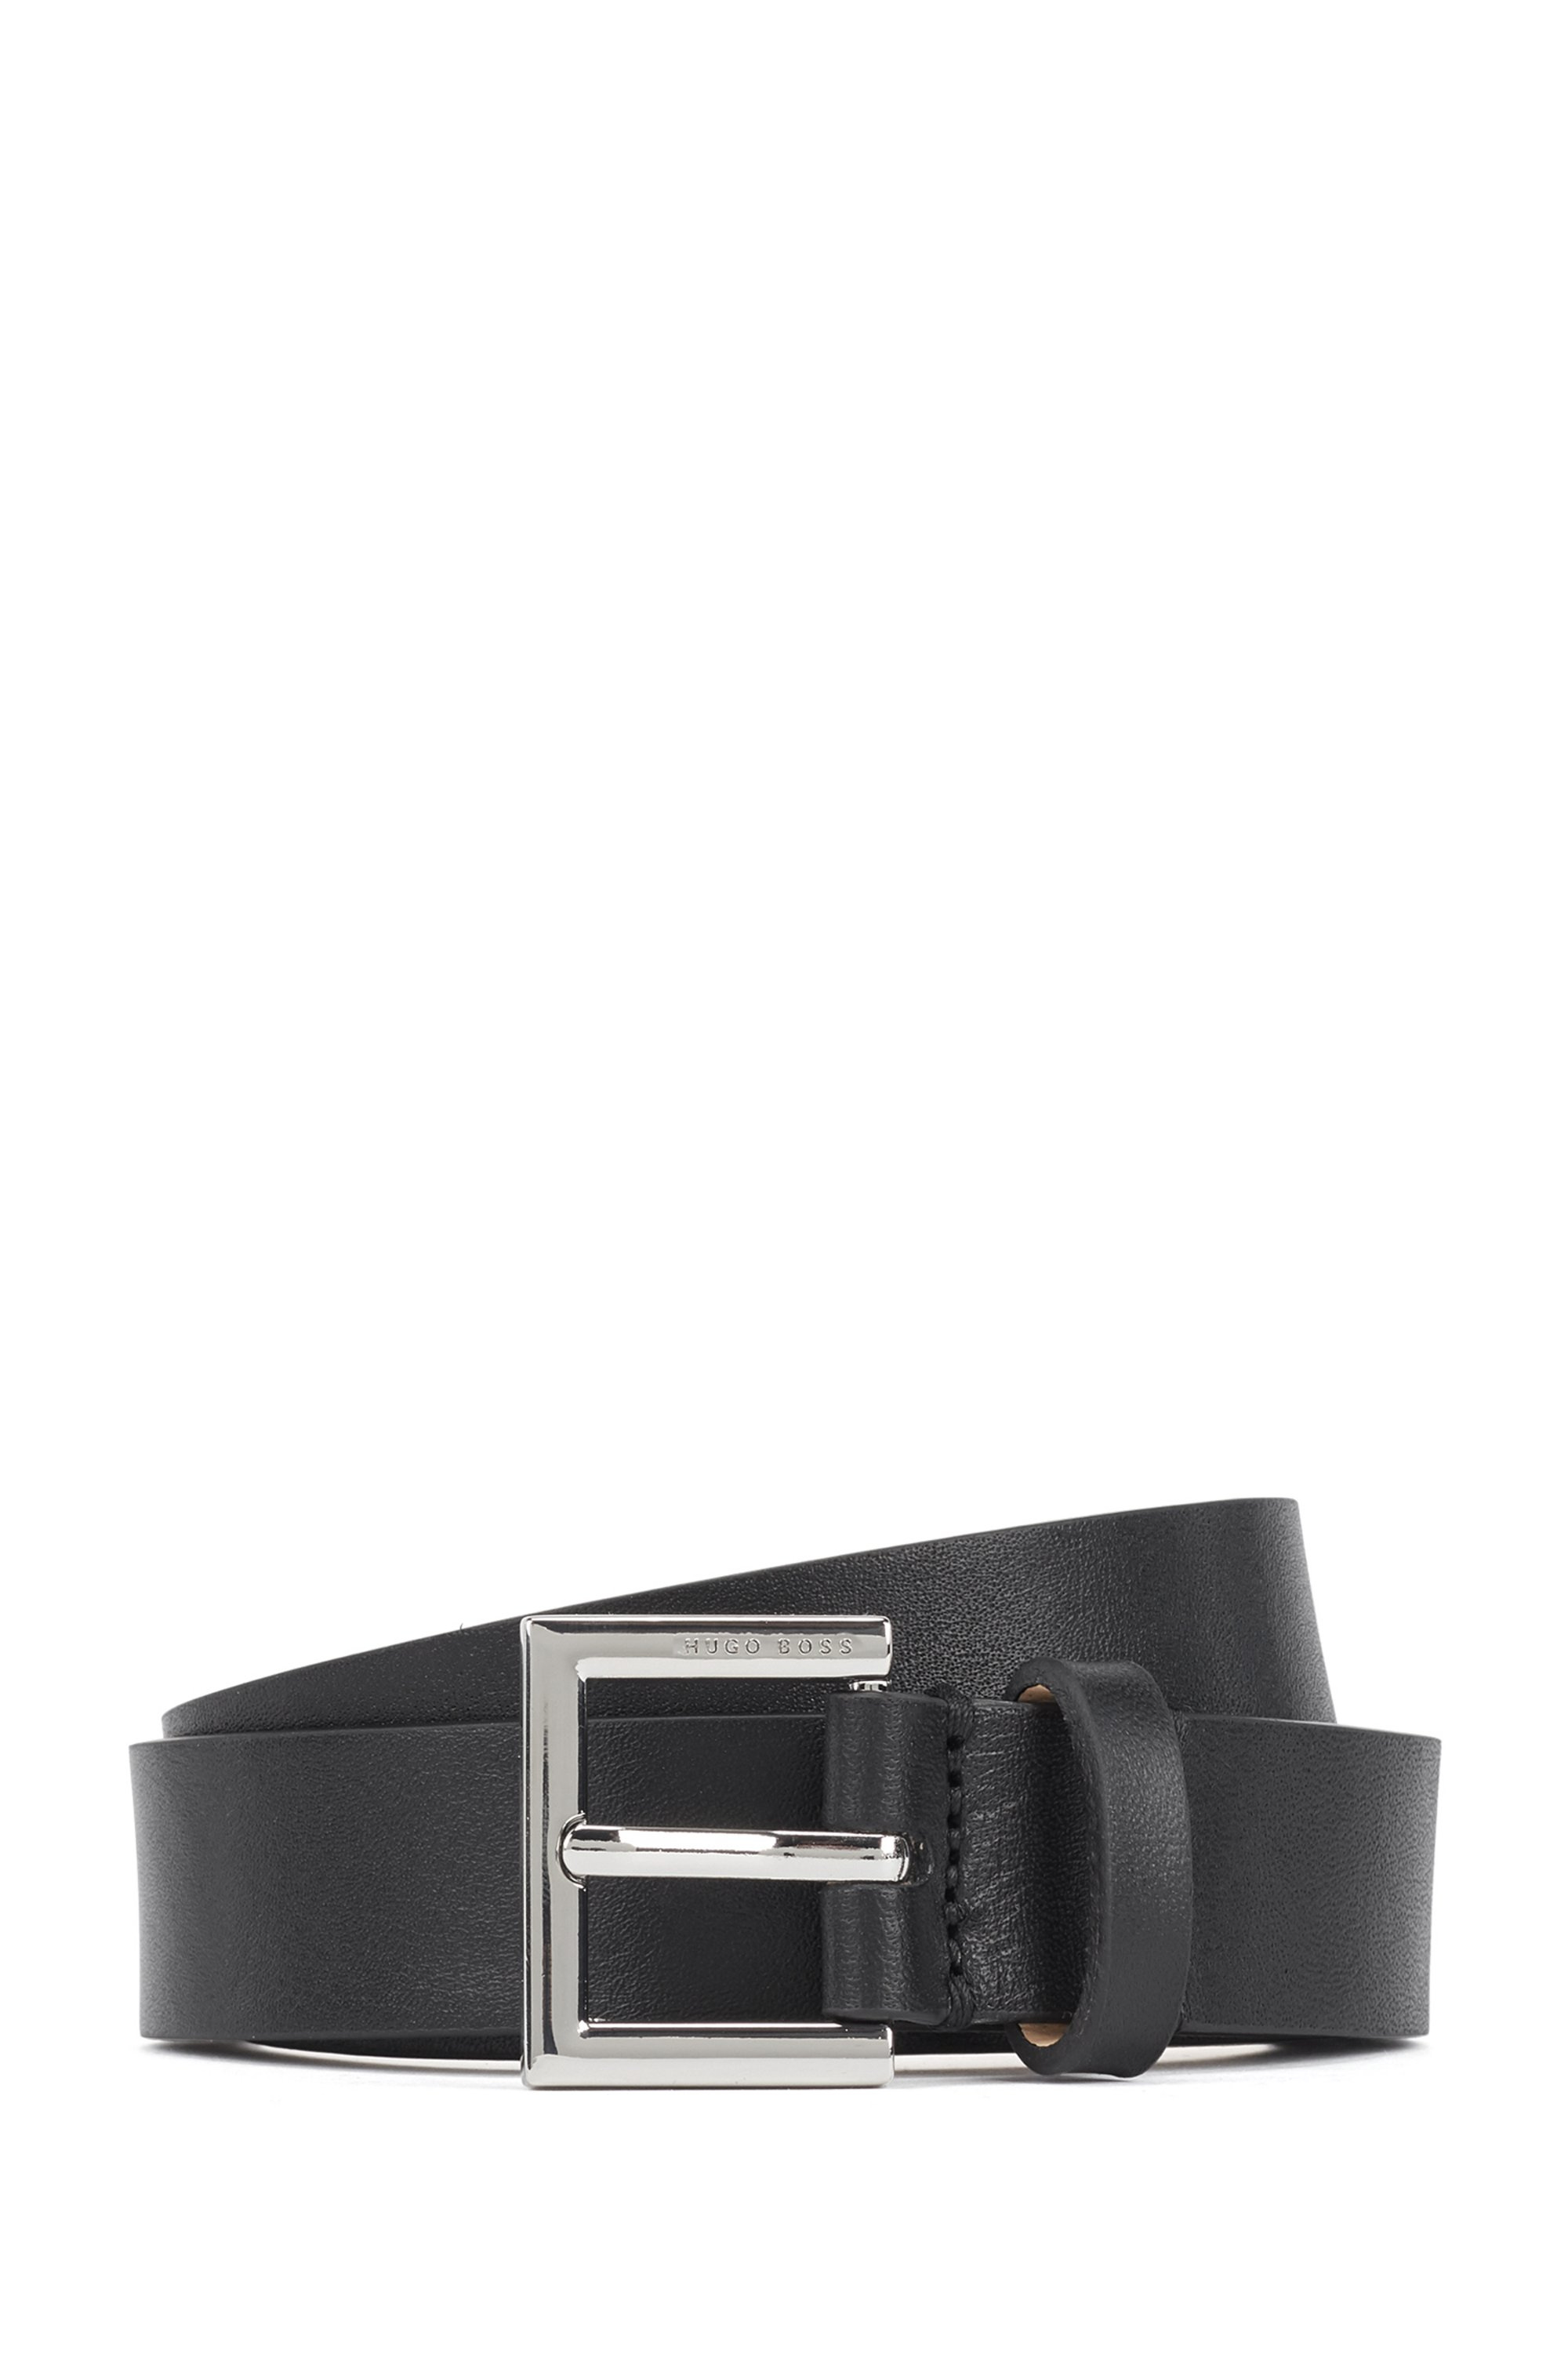 Italian-made belt in nappa leather with polished buckle, Black